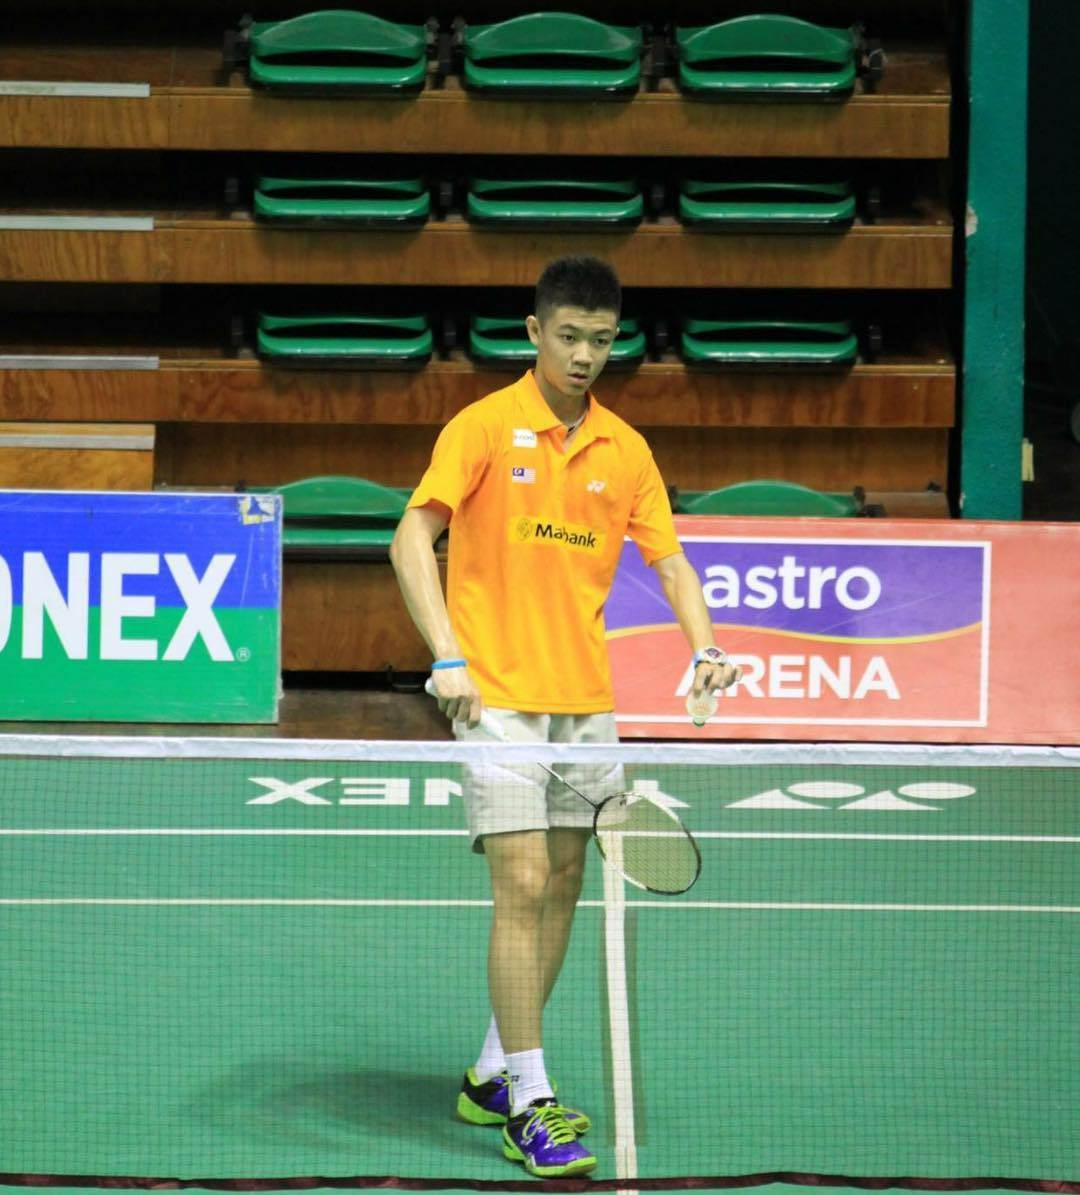 Facts About Lee Zii Jia, Malaysian badminton player - 18 years old